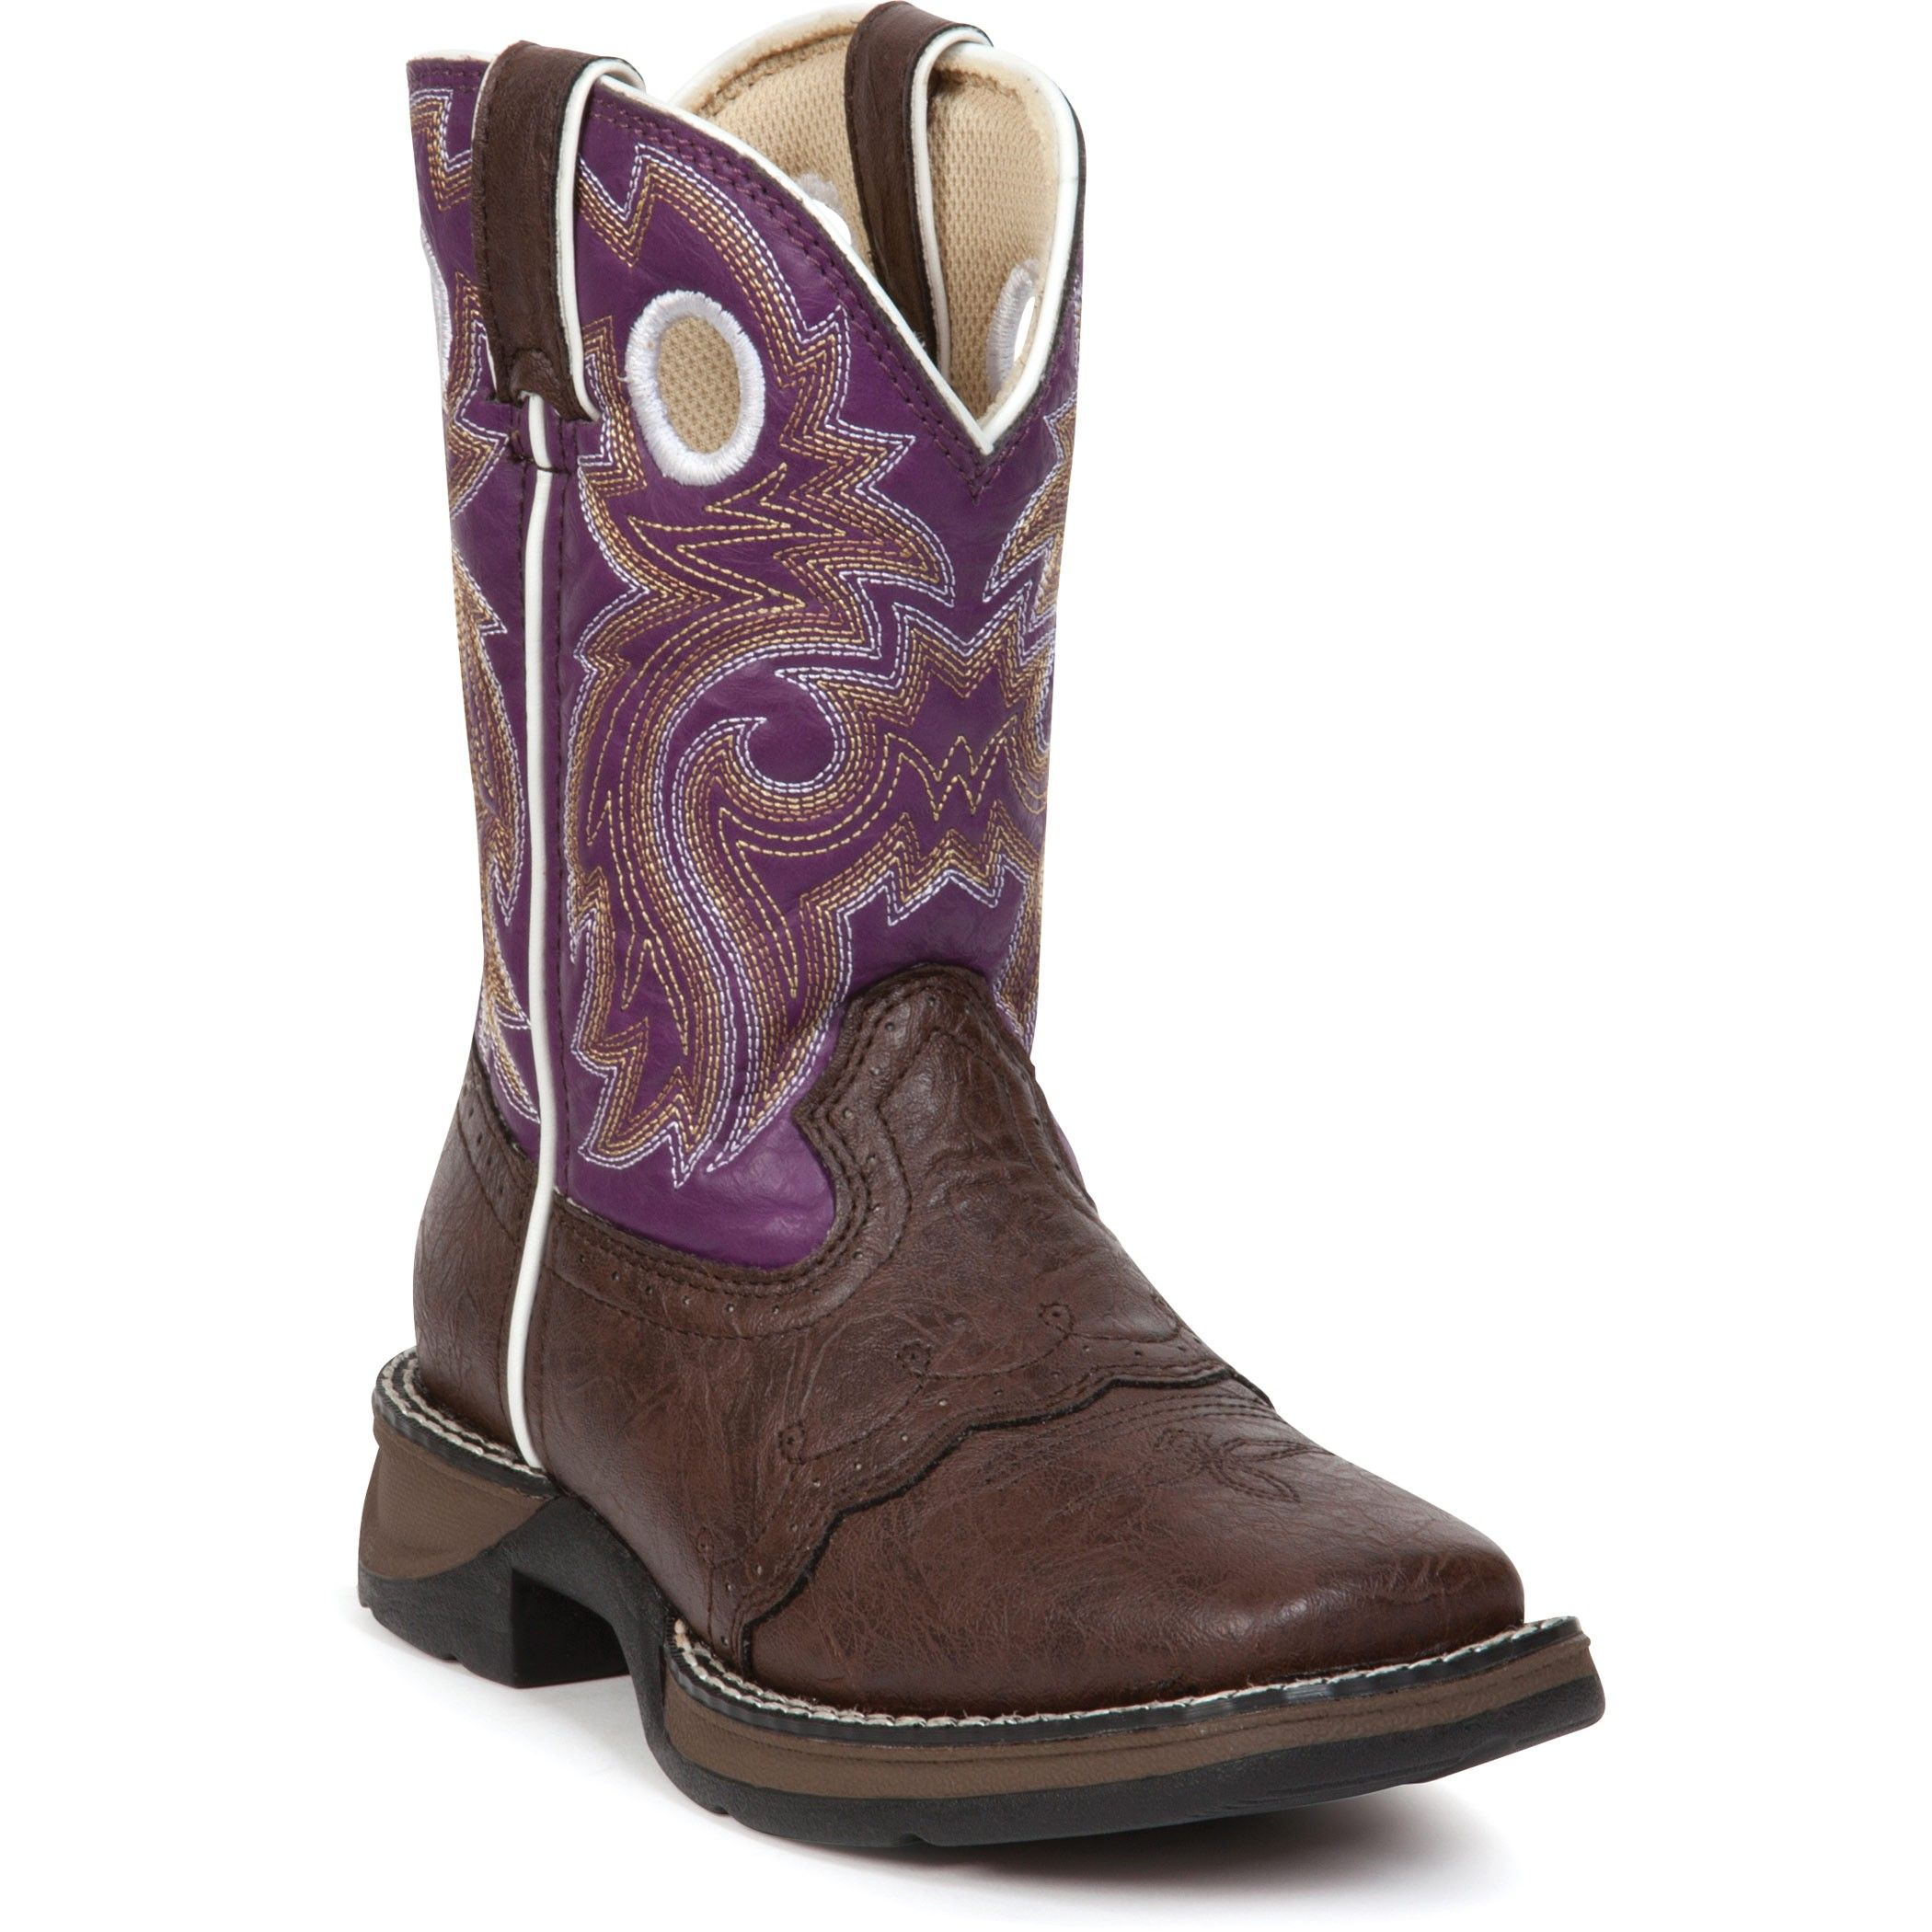 Youth Cowboy Boots - Cr Boot